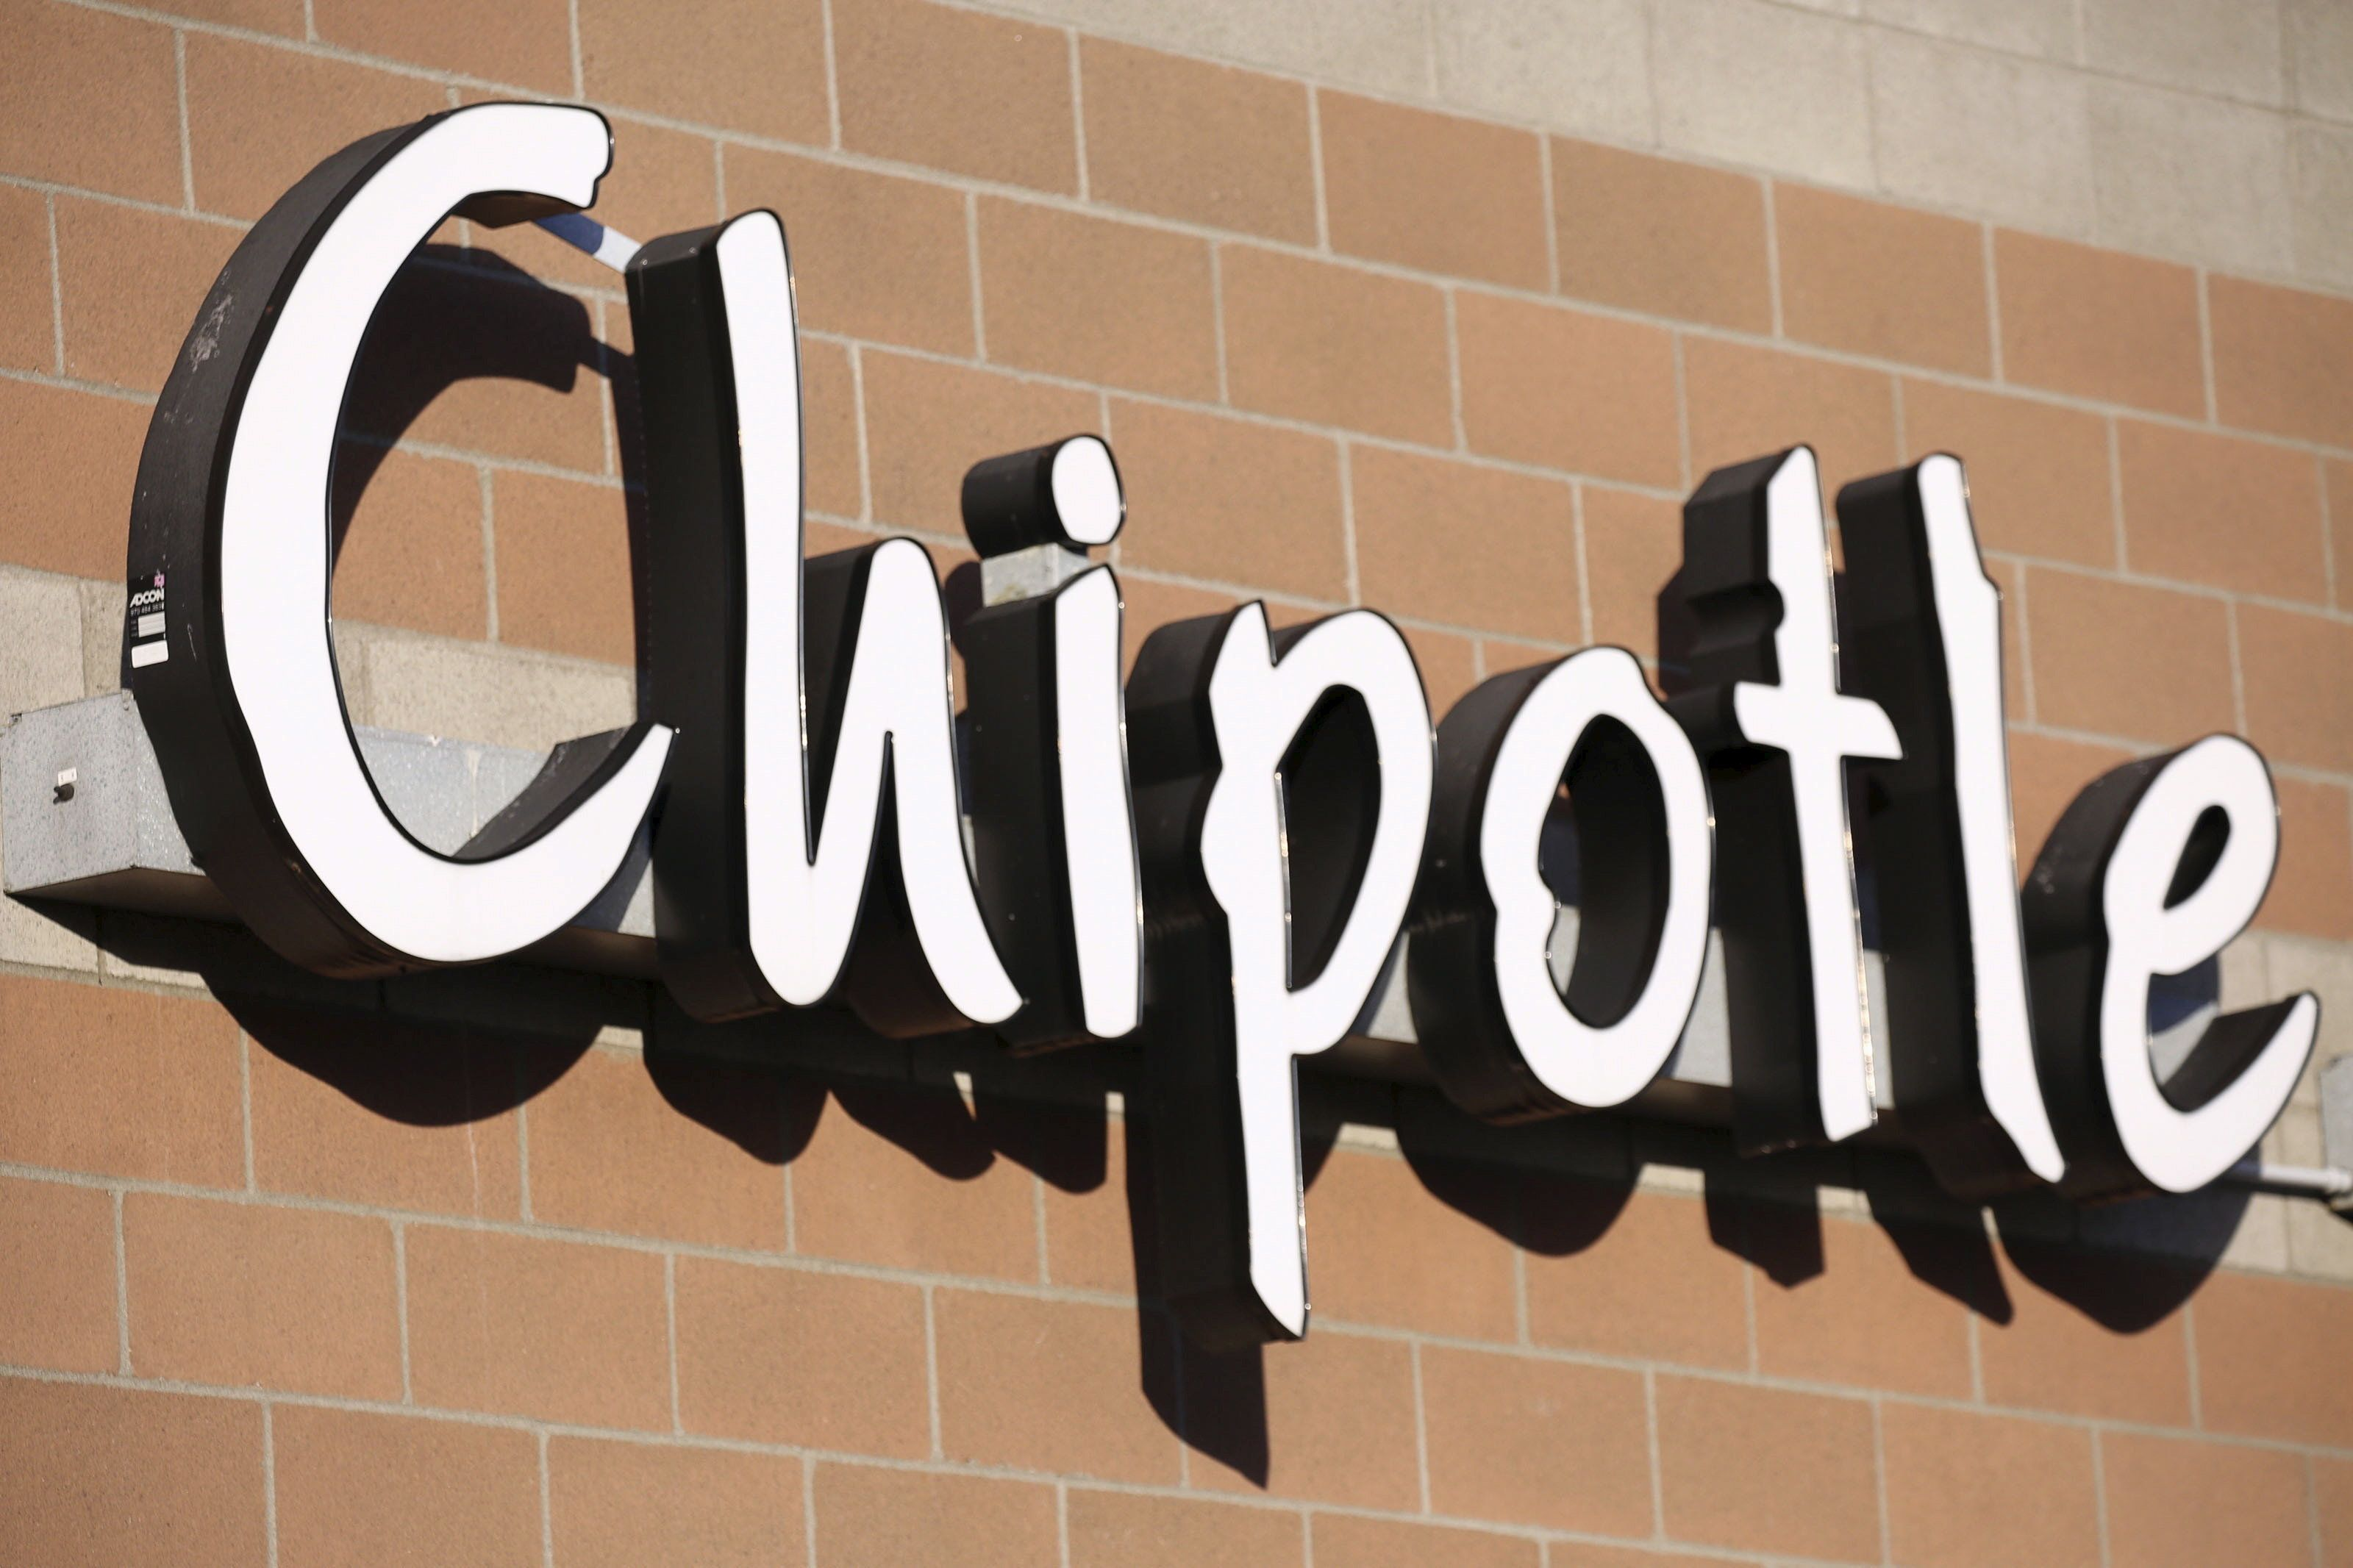 Chipotle Offers To Rehire Manager Fired For Refusing To Serve Black Customers